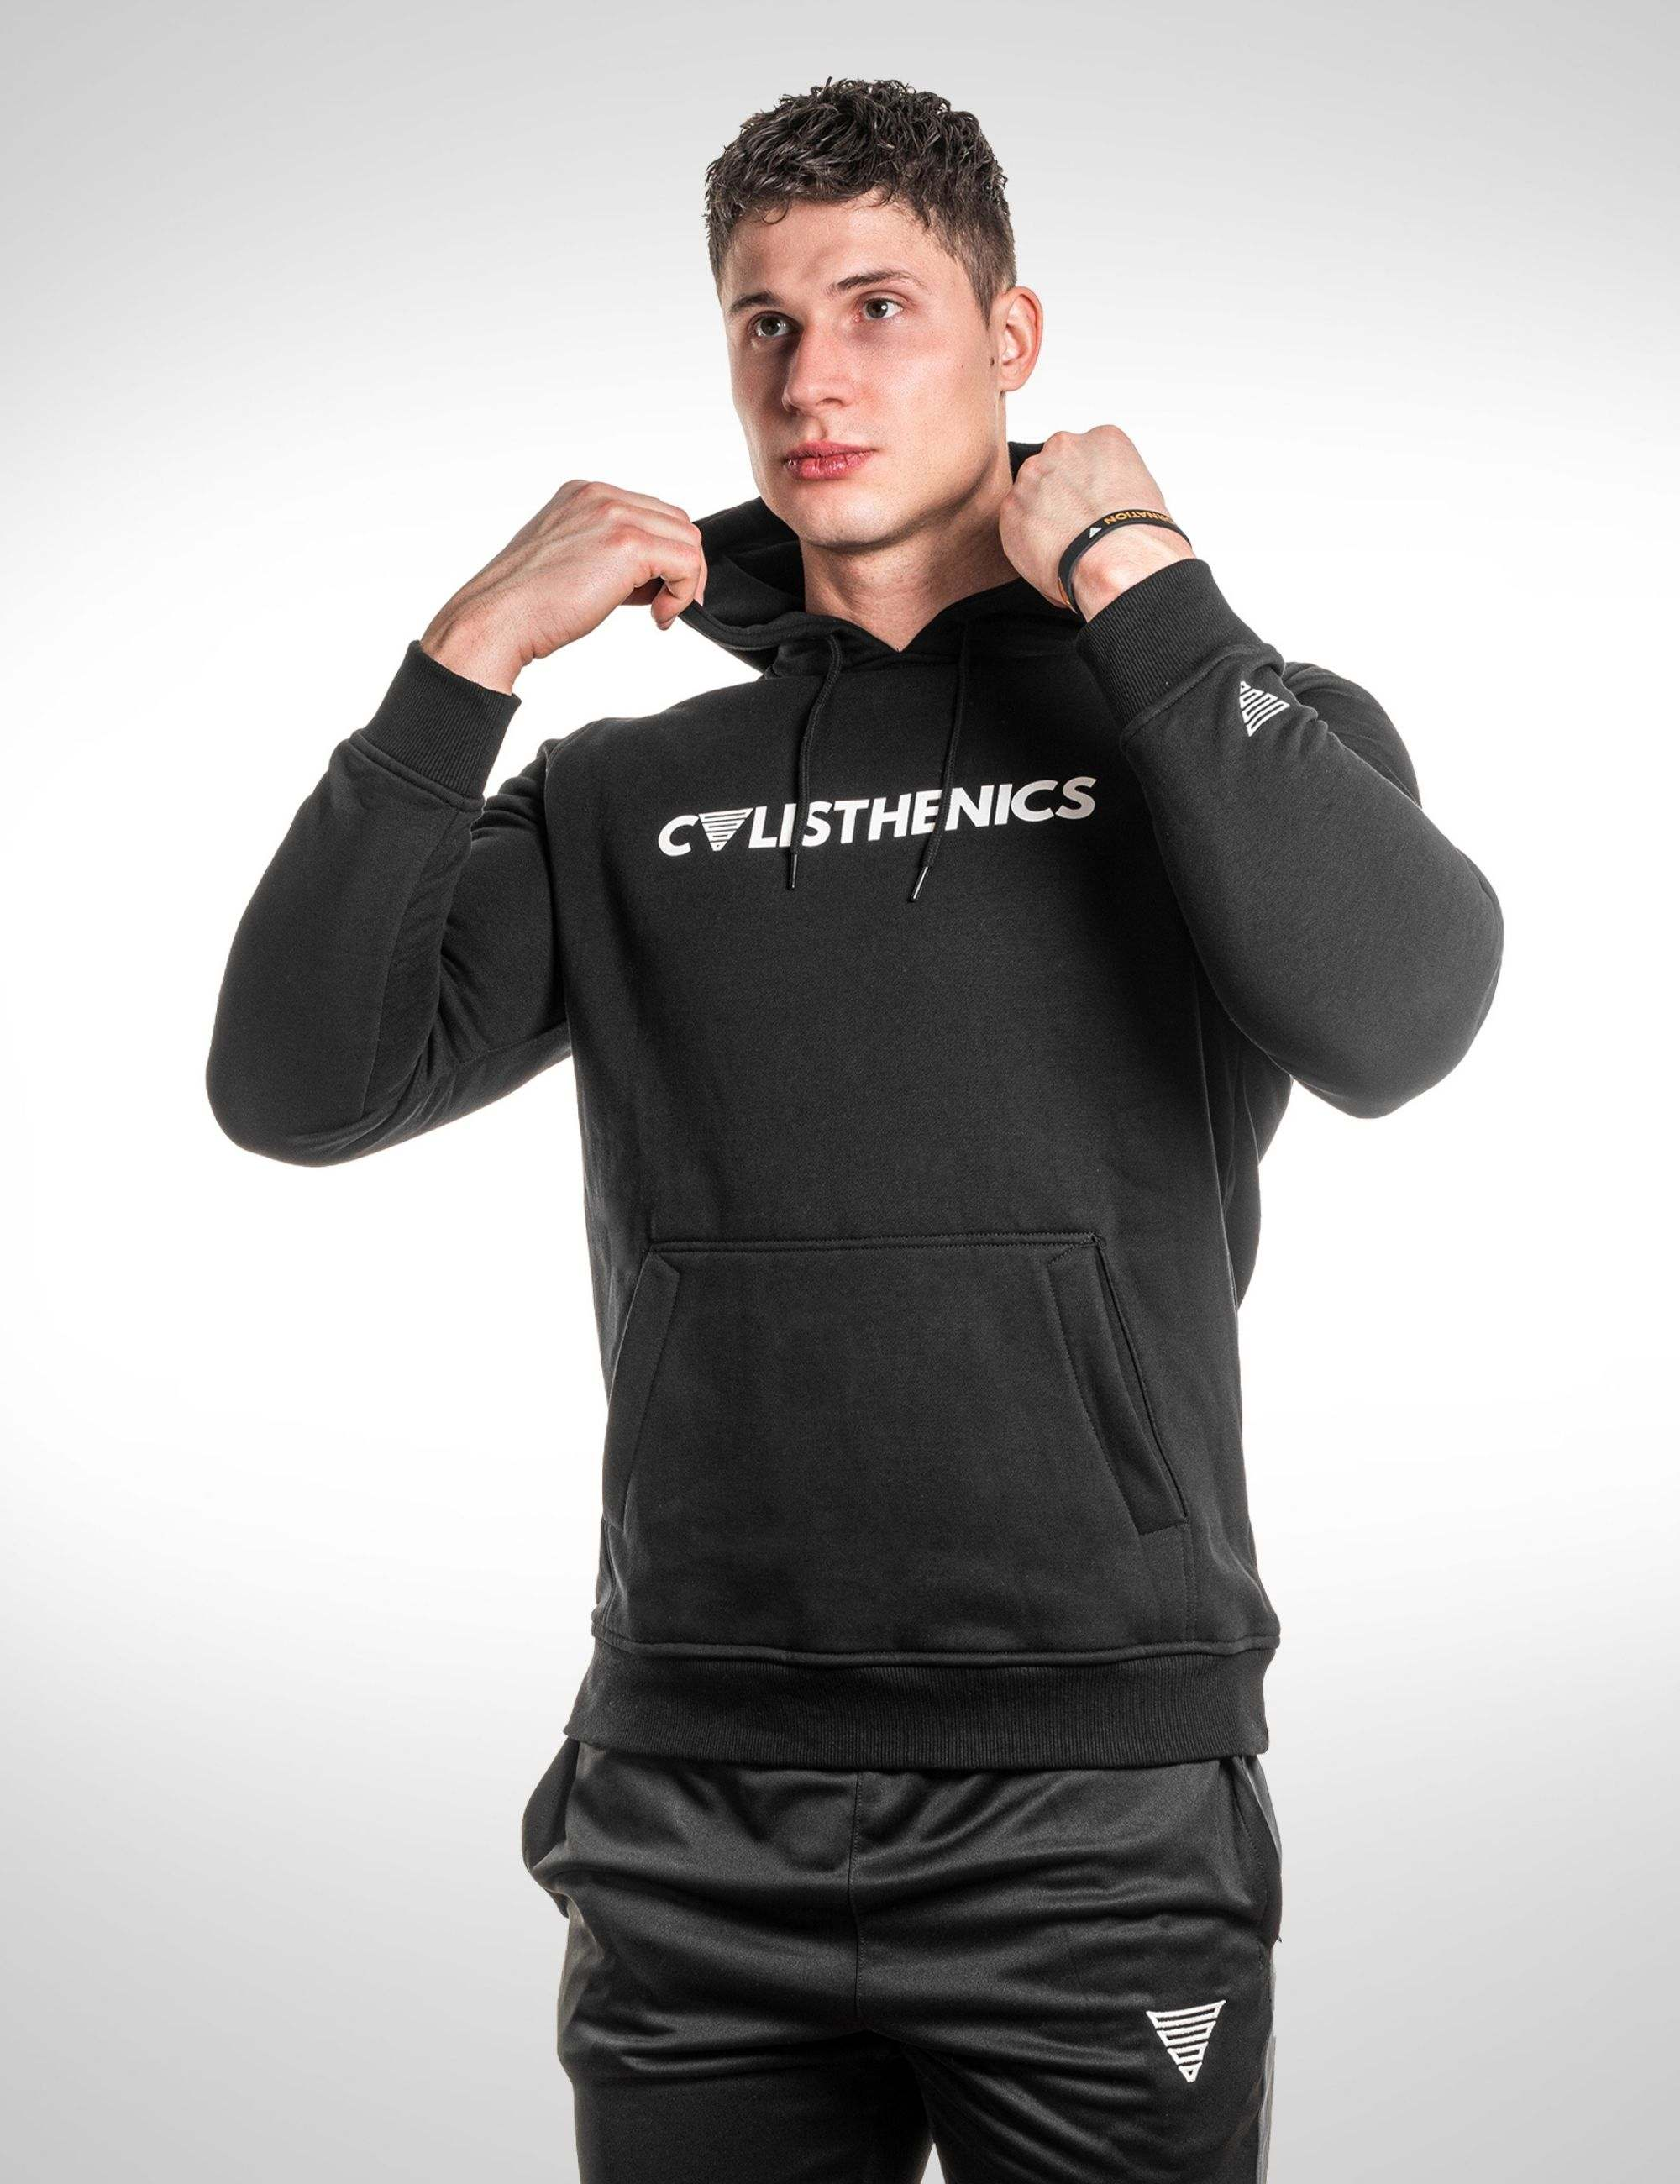 Calisthenics Hoodie GORNATION weighted calisthenics street workout equipment shop store brand online shipping